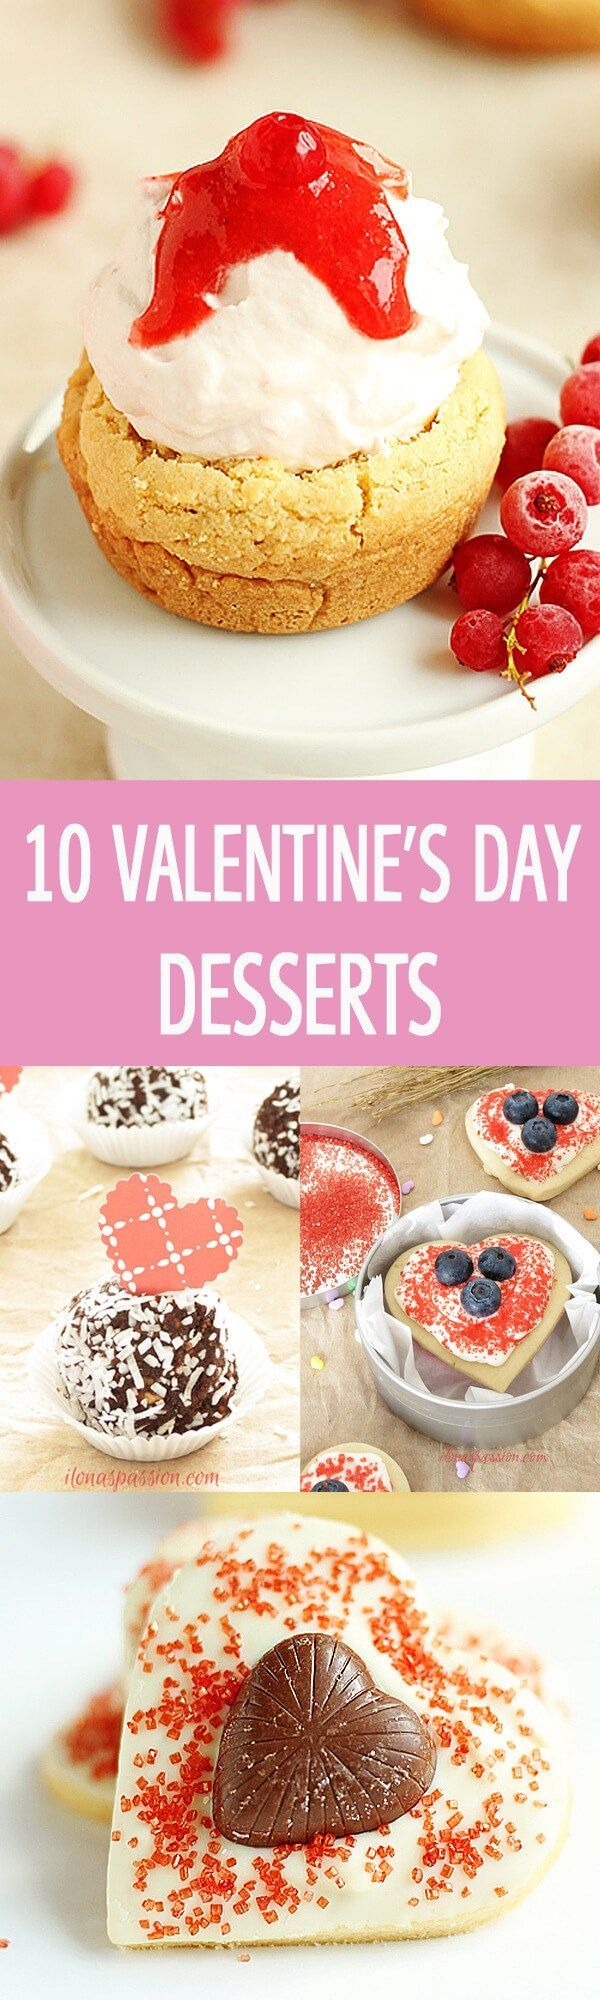 Love is in the air with these scrumptious 10 Valentine's Day desserts including butter cookies, chocolate truffles, mini donuts and more! The BEST recipes! by http://ilonaspassion.com I@ilonaspassion